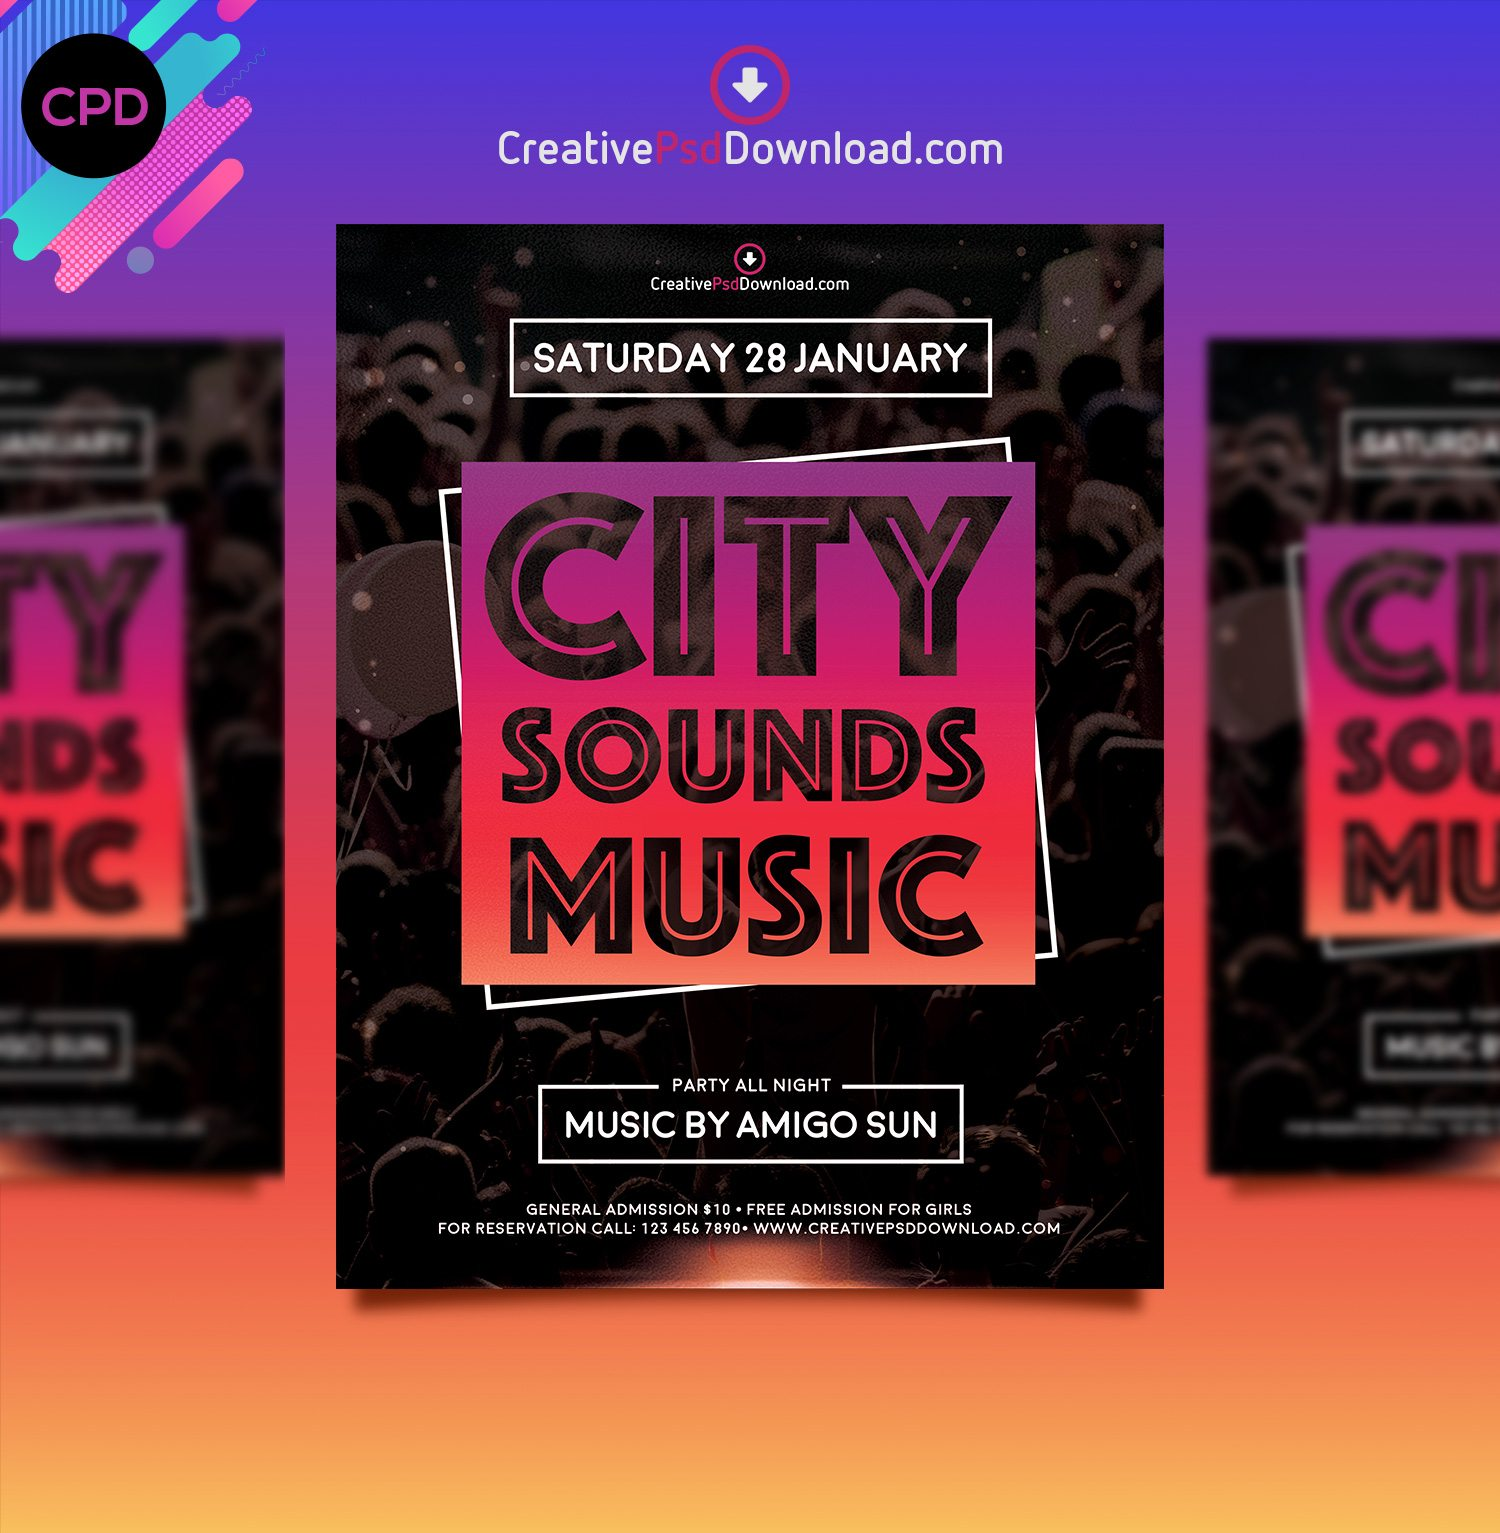 City Sounds Music Premium Flyer Template Thumbnail